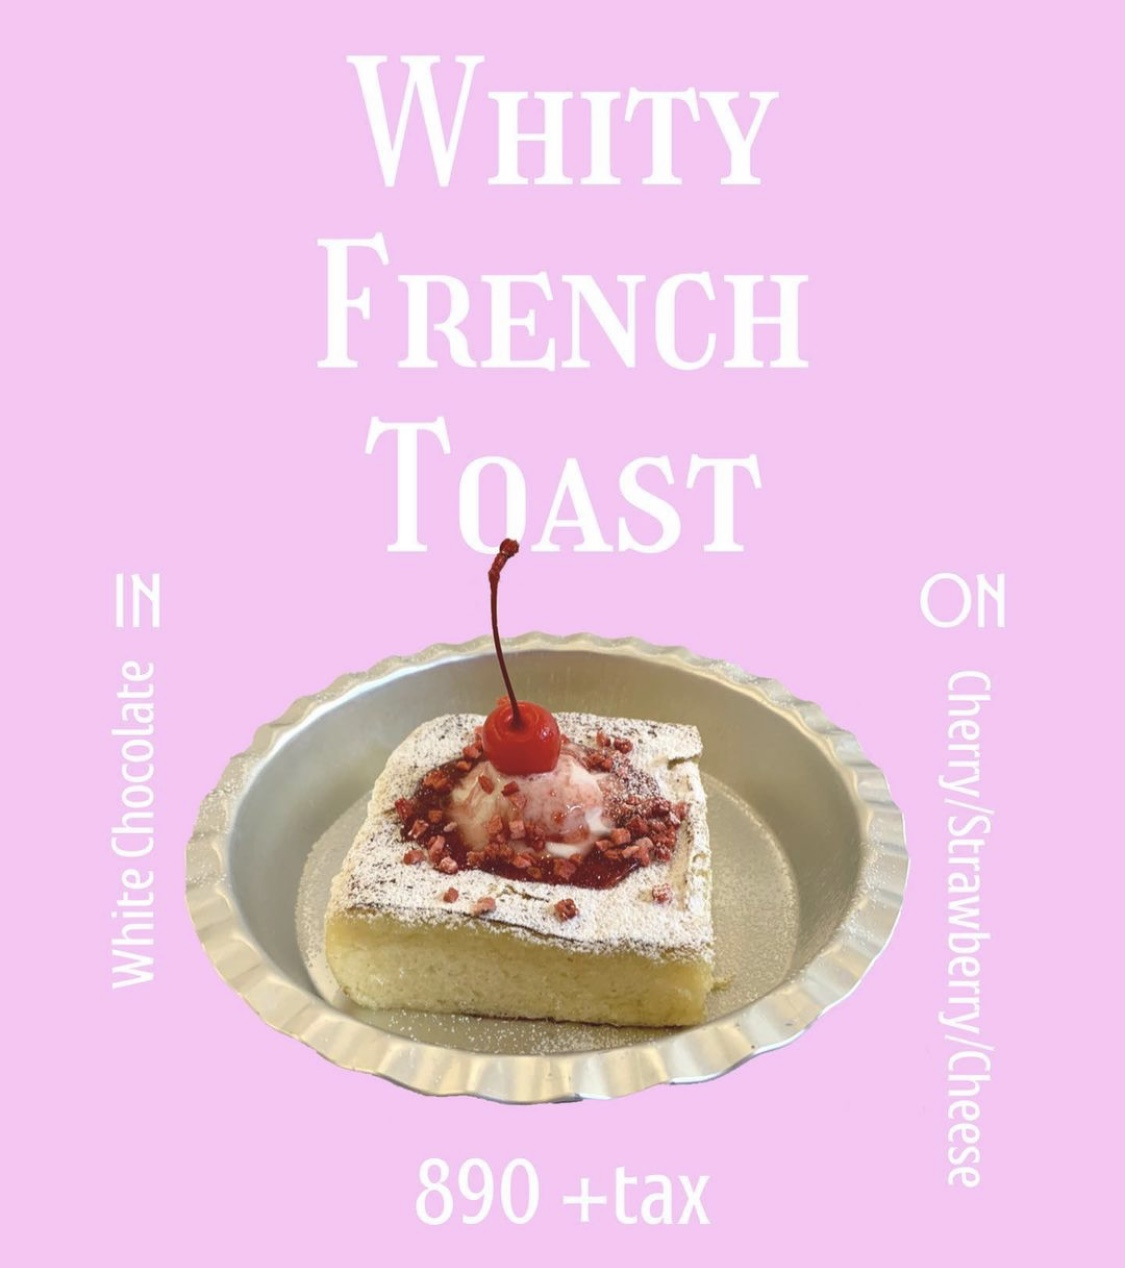 WHITY FRENCH TOAST